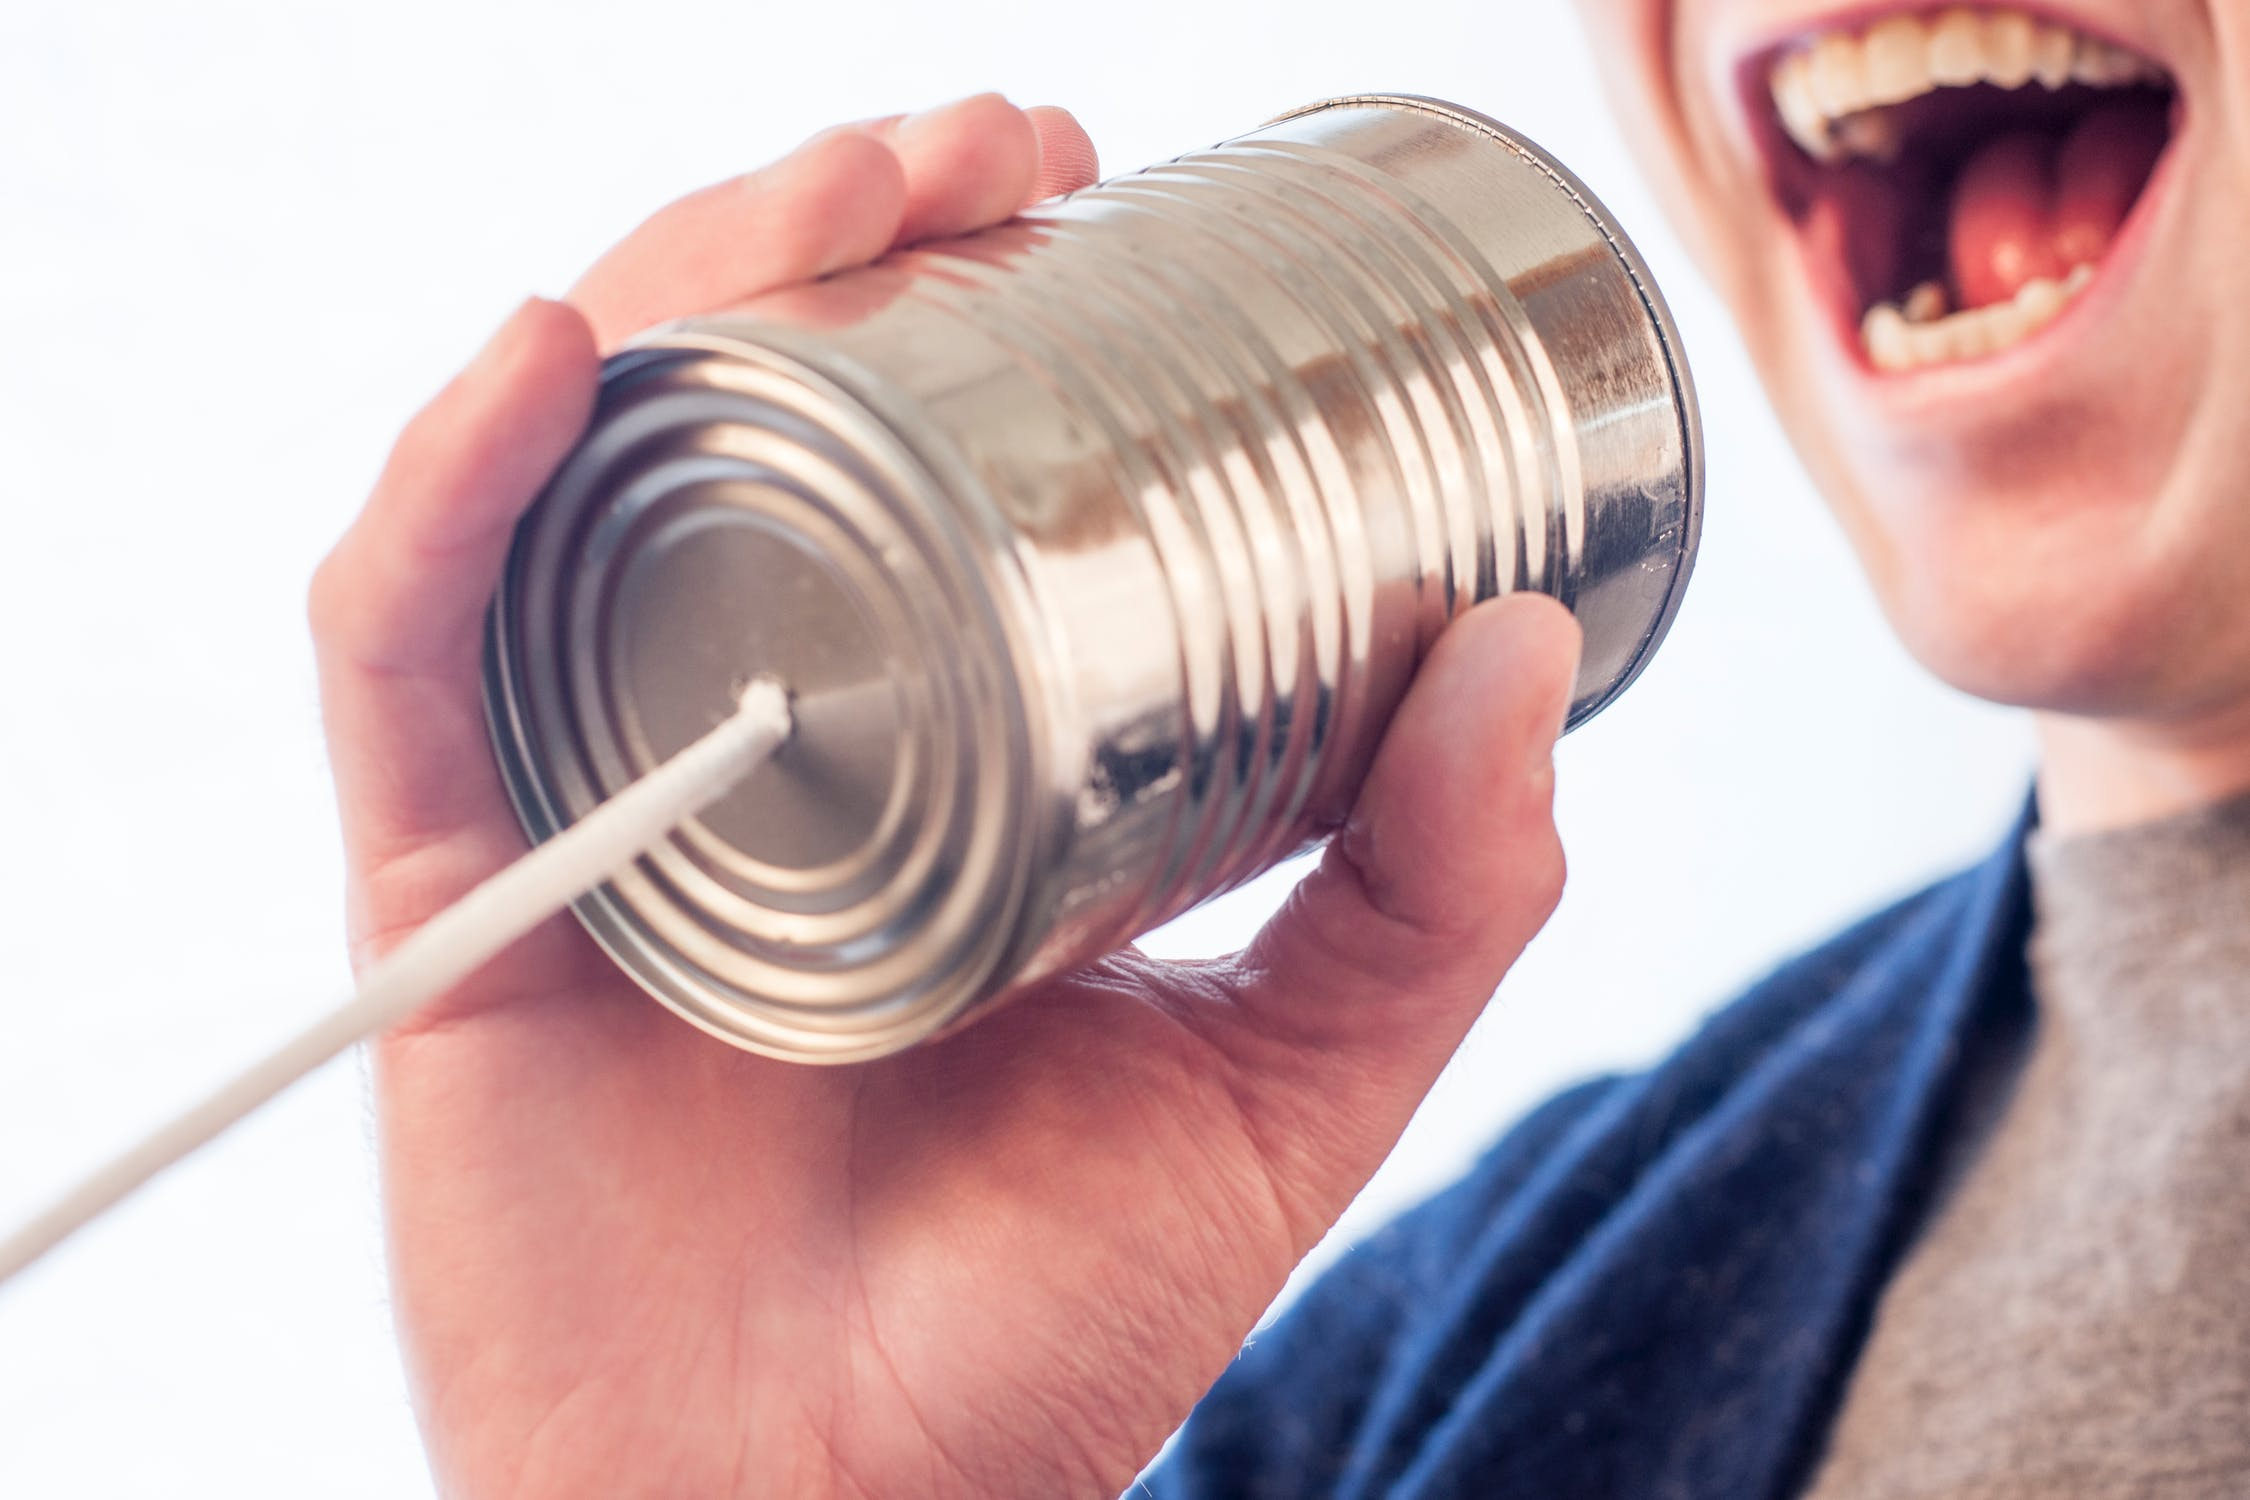 Person speaking to a can with a string as a pretend telephone.